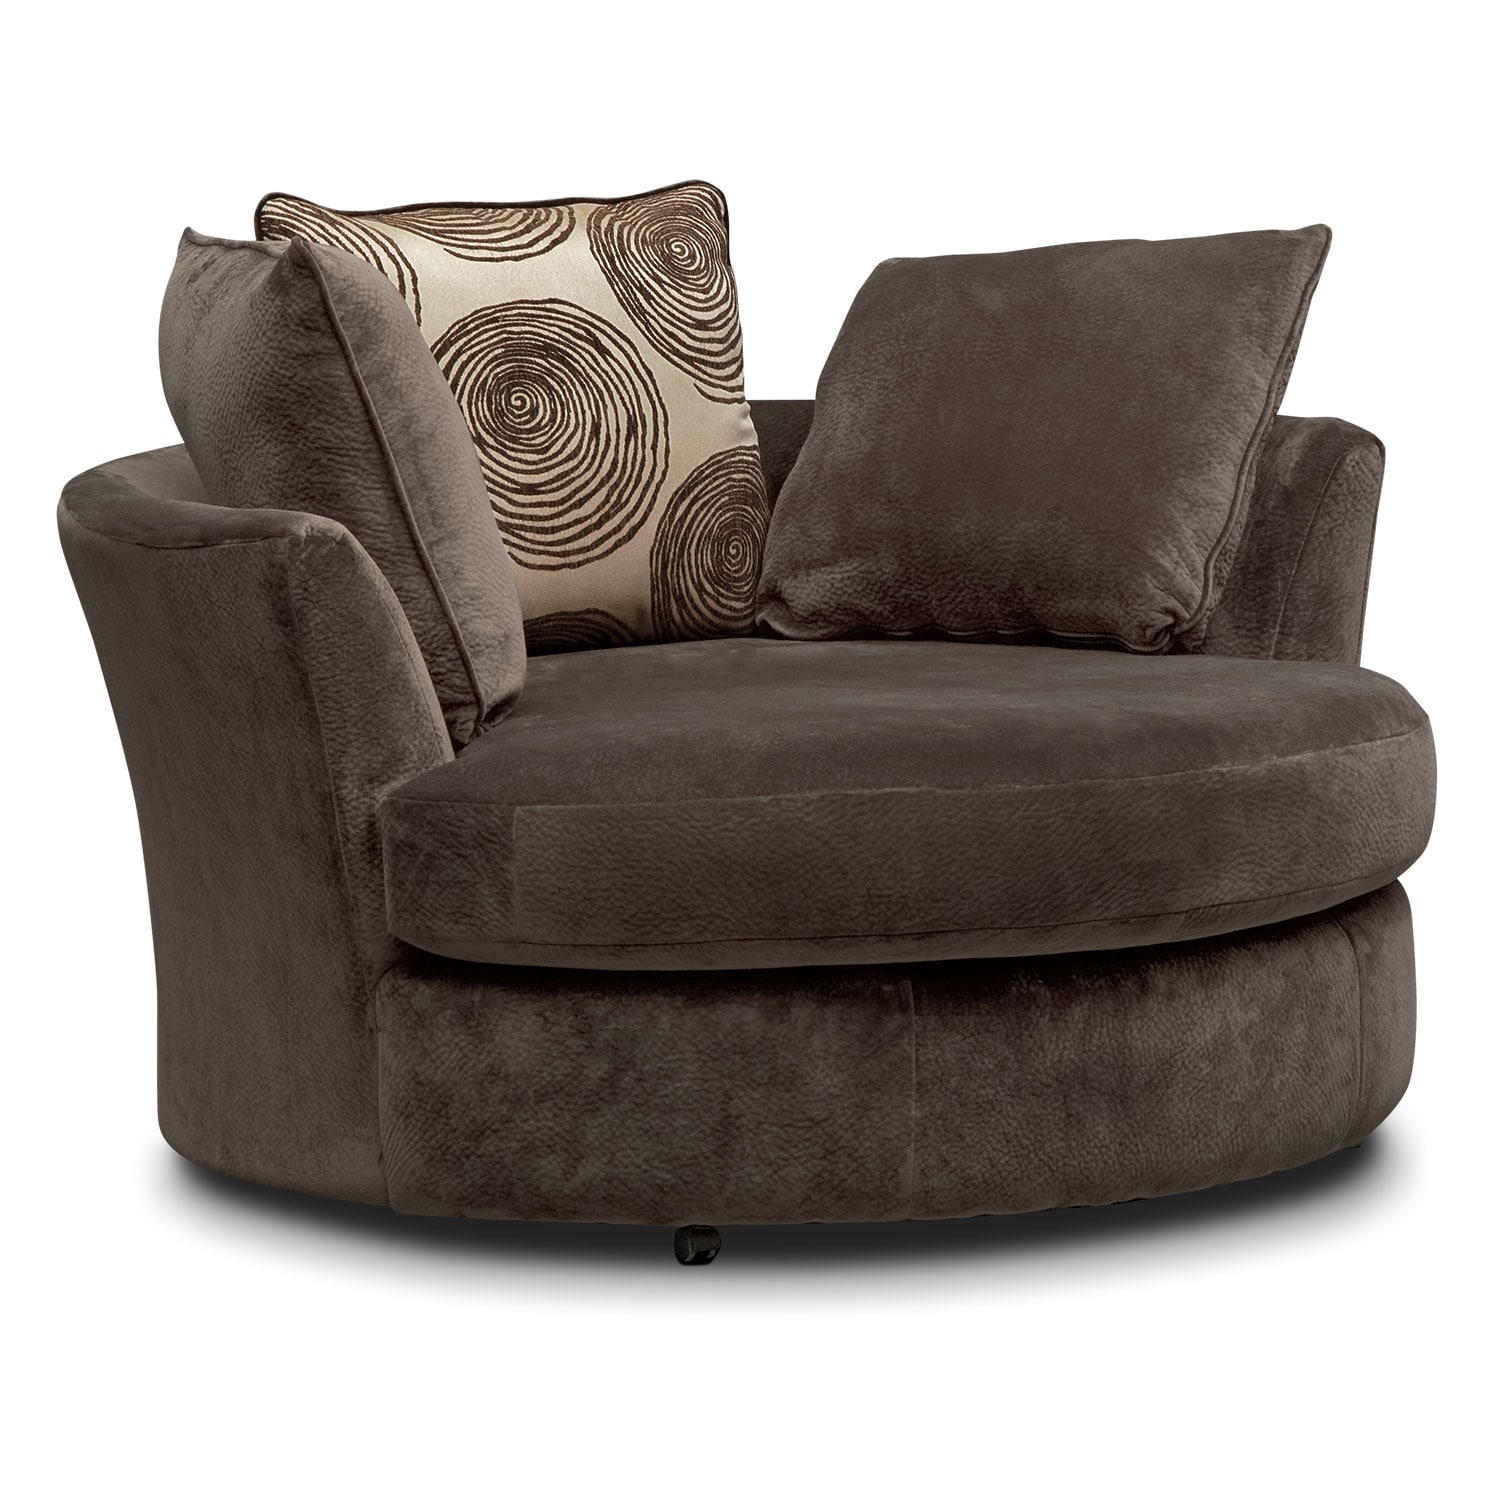 Cordoba Chocolate Swivel Chair